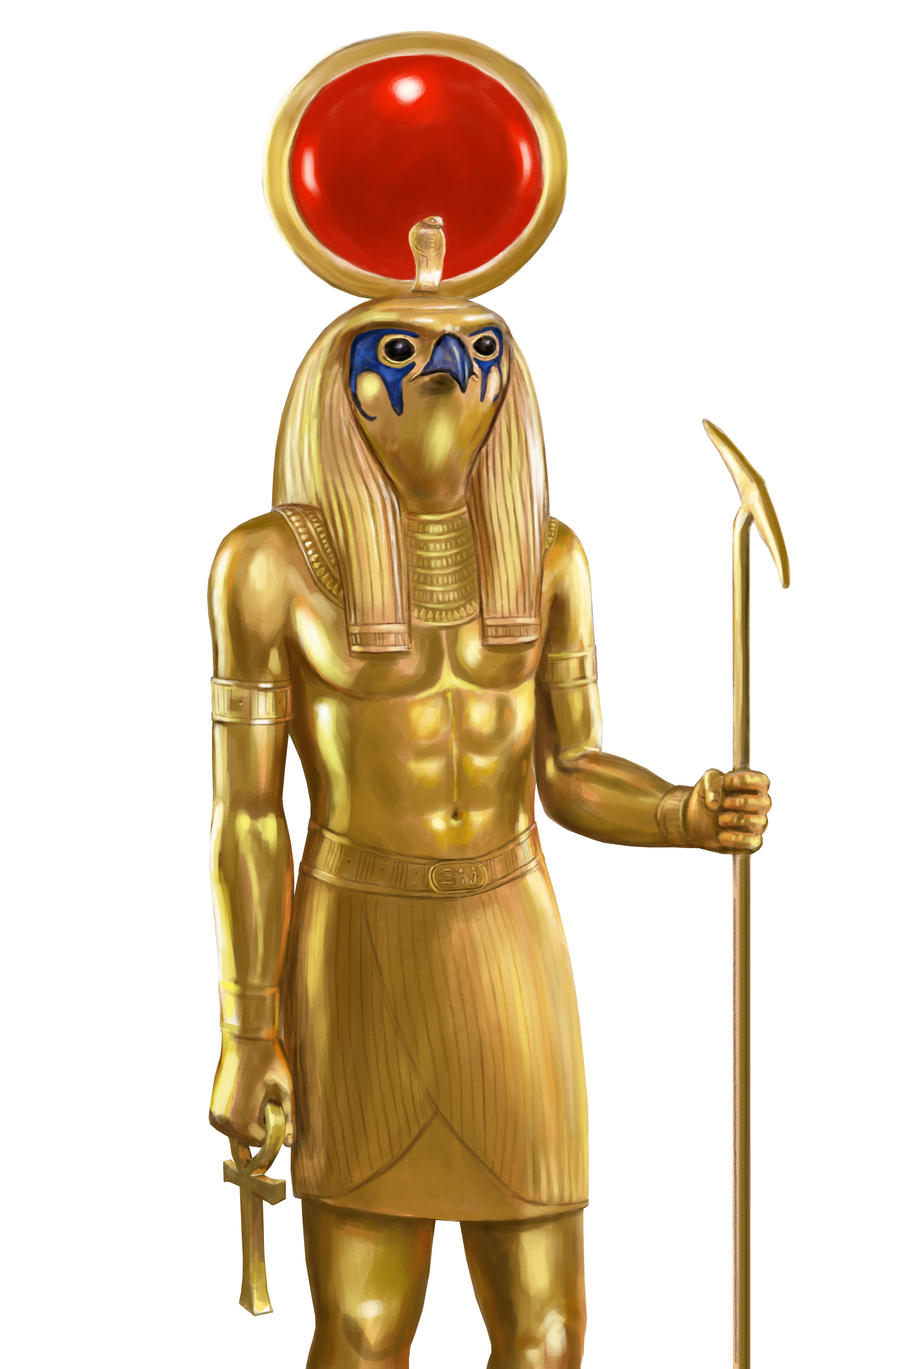 Ra gold statue on white